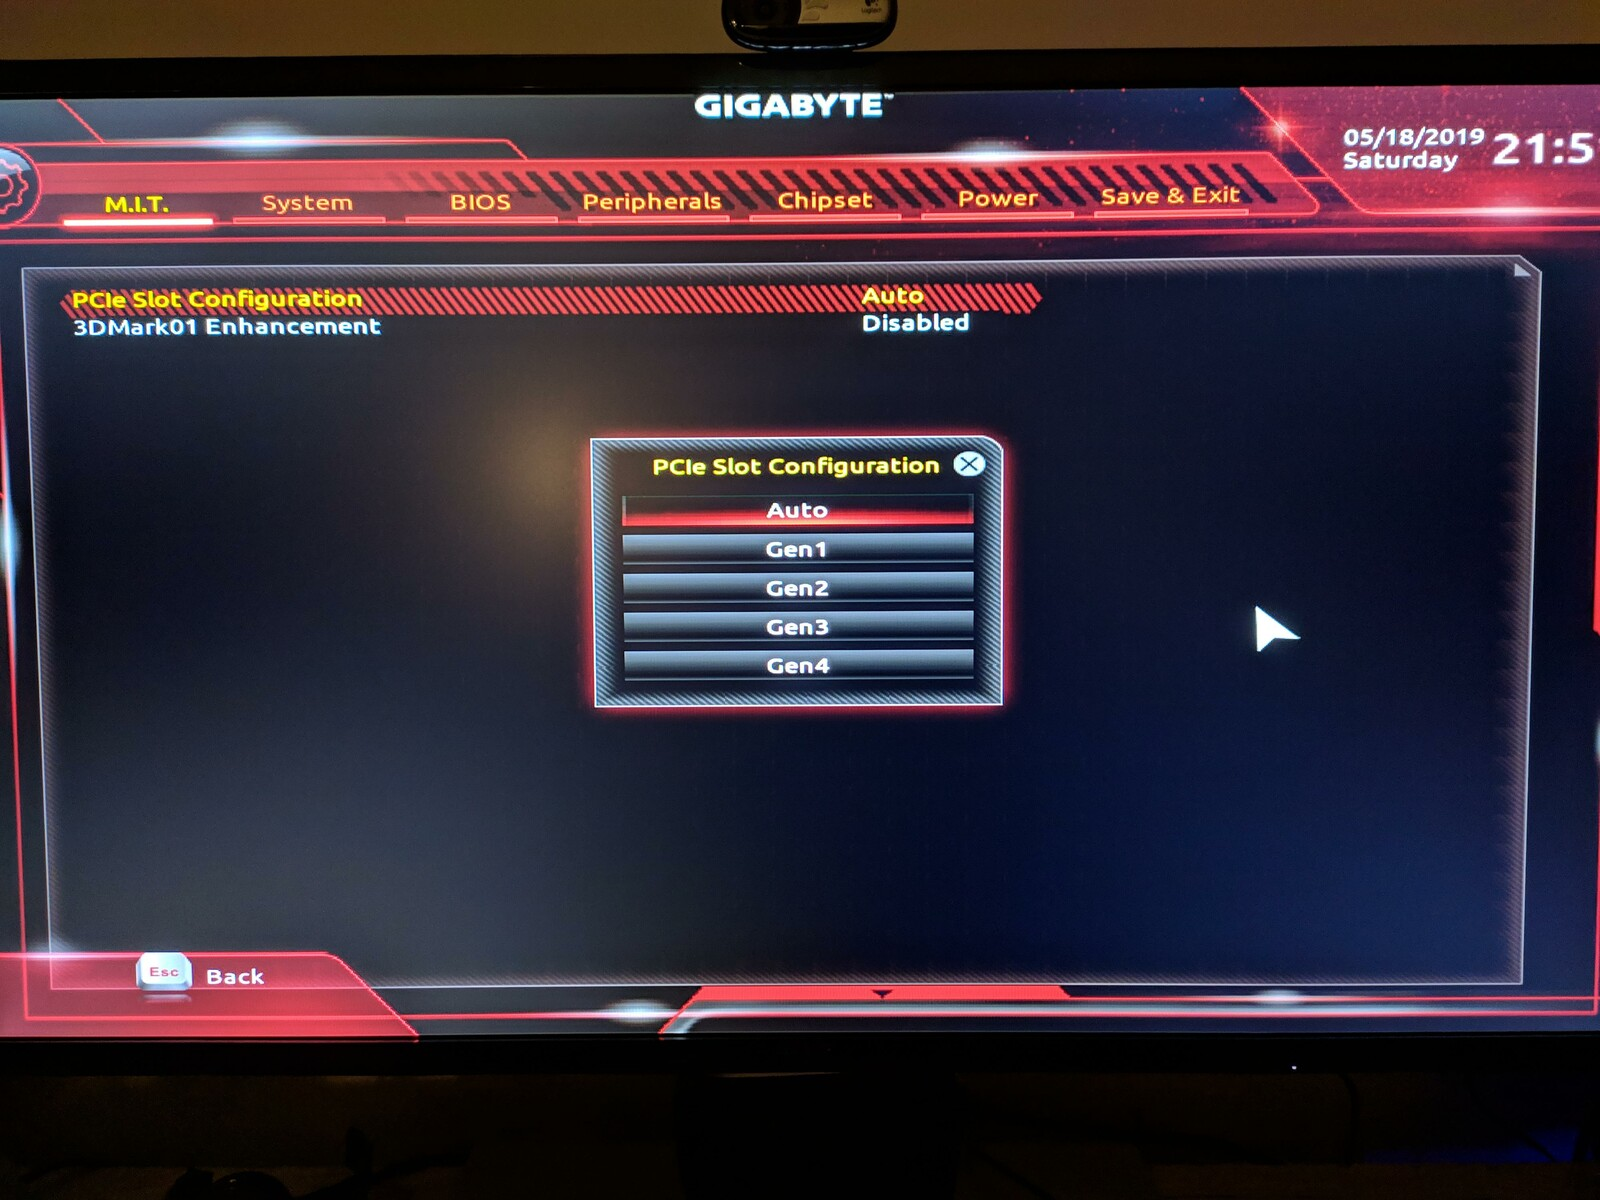 Gigabyte's latest BIOS update enables PCIe 4 0 support on its AMD